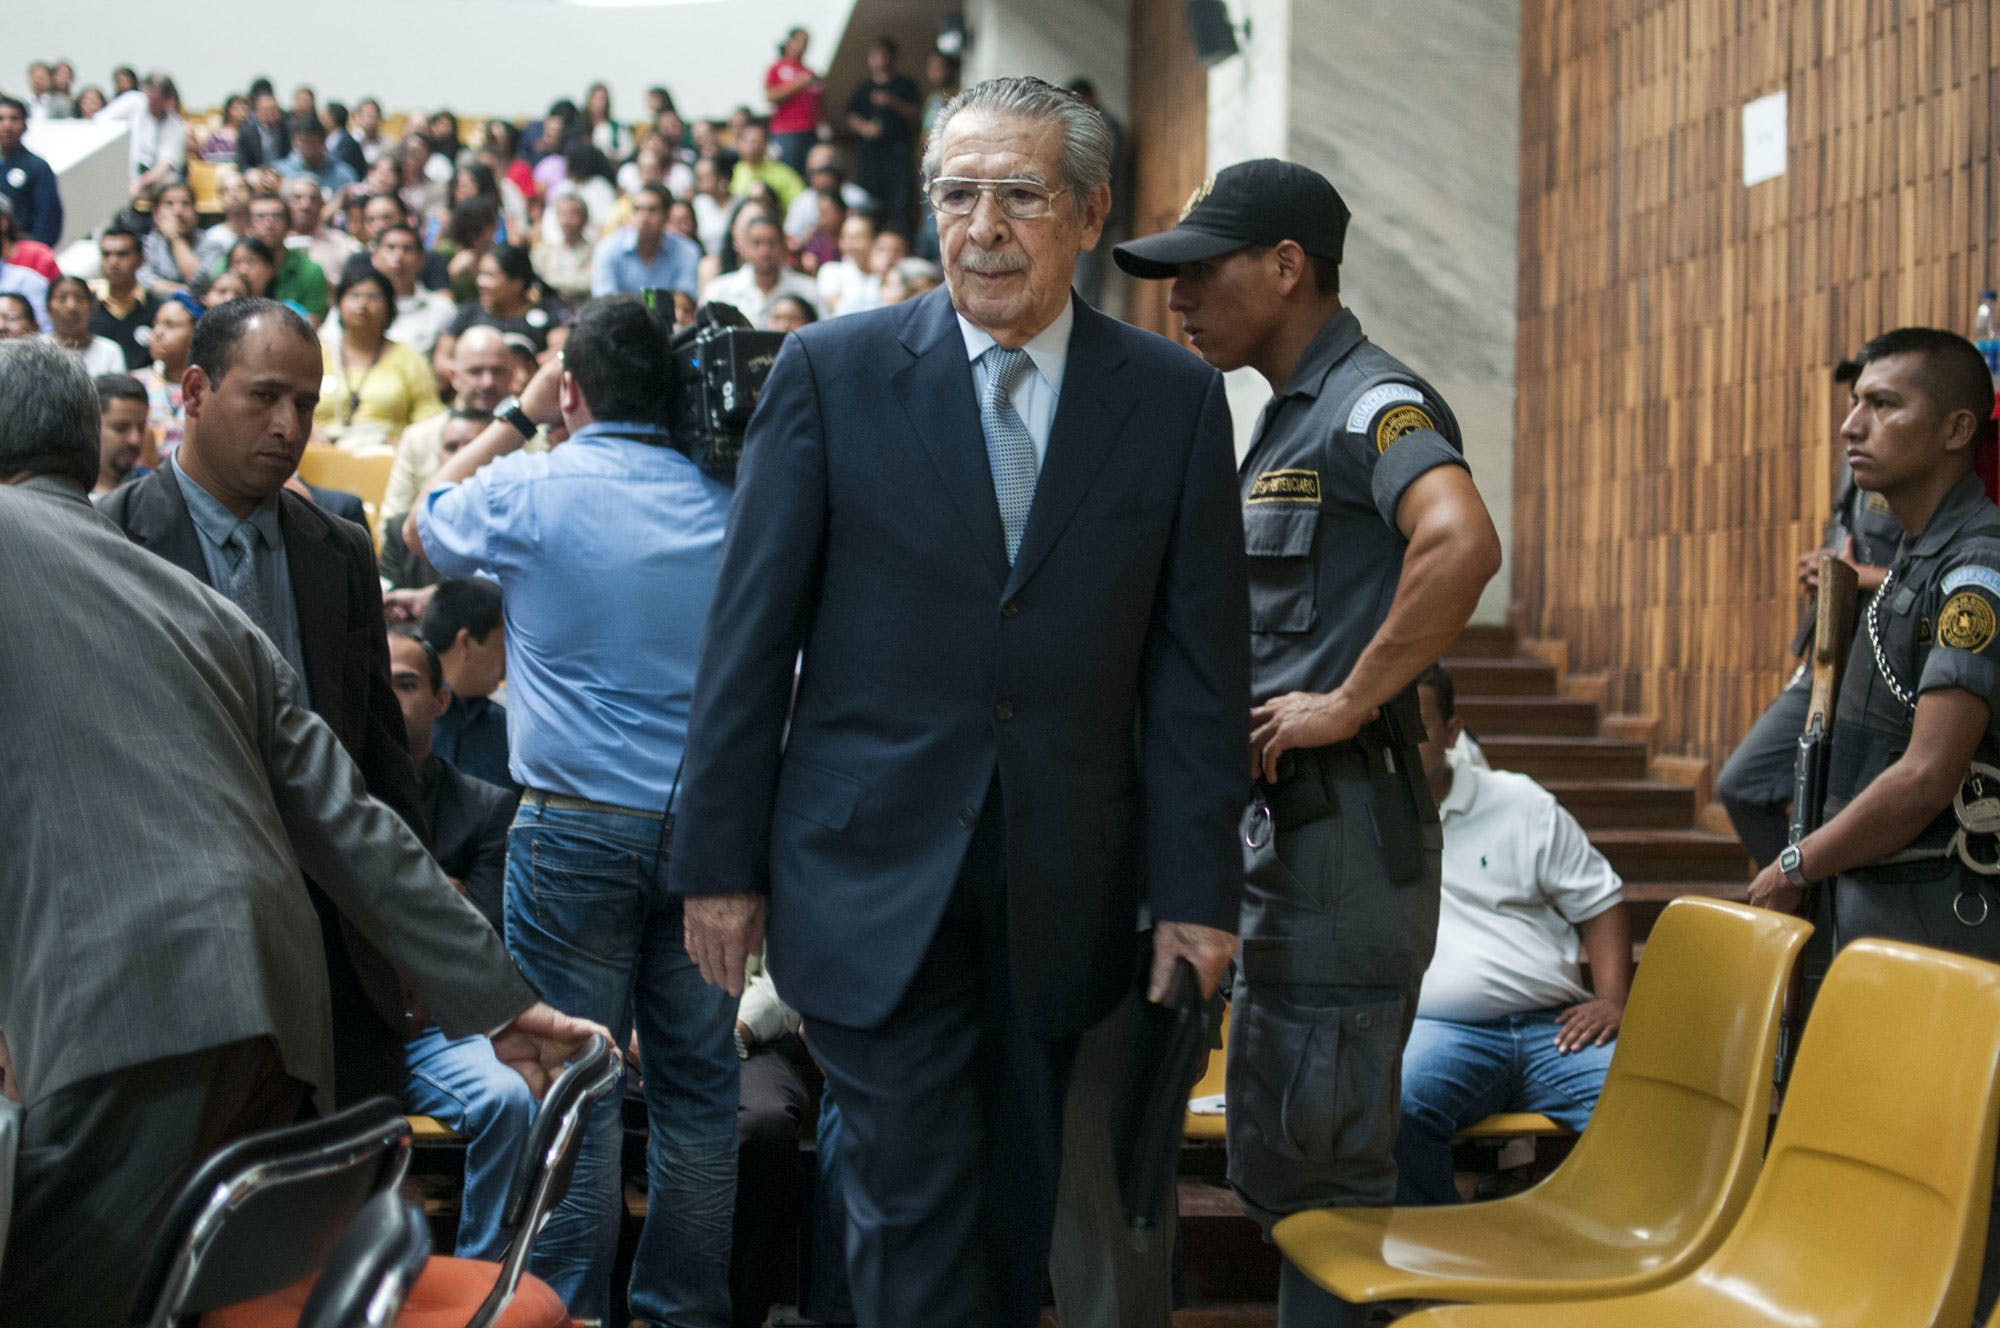 Guatemala's former dictator General Efraín Ríos Montt enters the court after Tribunal President Yasmin Barrios announced that judges overseeing the trial will not accept another judge's ruling that the case should start over, one day after a judge ordered the suspension of the genocide trail against Rios Montt and General Jose Mauricio Rodriguez Sanchez in Guatemala City, Friday, April 19, 2013. Rios Montt seized power in a March 23, 1982 coup, and ruled until he himself was overthrown just over a year later. Prosecutors say that while in power he was aware of, and thus responsible for, the slaughter by subordinates of at least 1,771 Ixil Mayas in San Juan Cotzal, San Gaspar Chajul and Santa Maria Nebaj, towns in the Quiche department of Guatemala's western highlands. (AP Photo/Luis Soto)